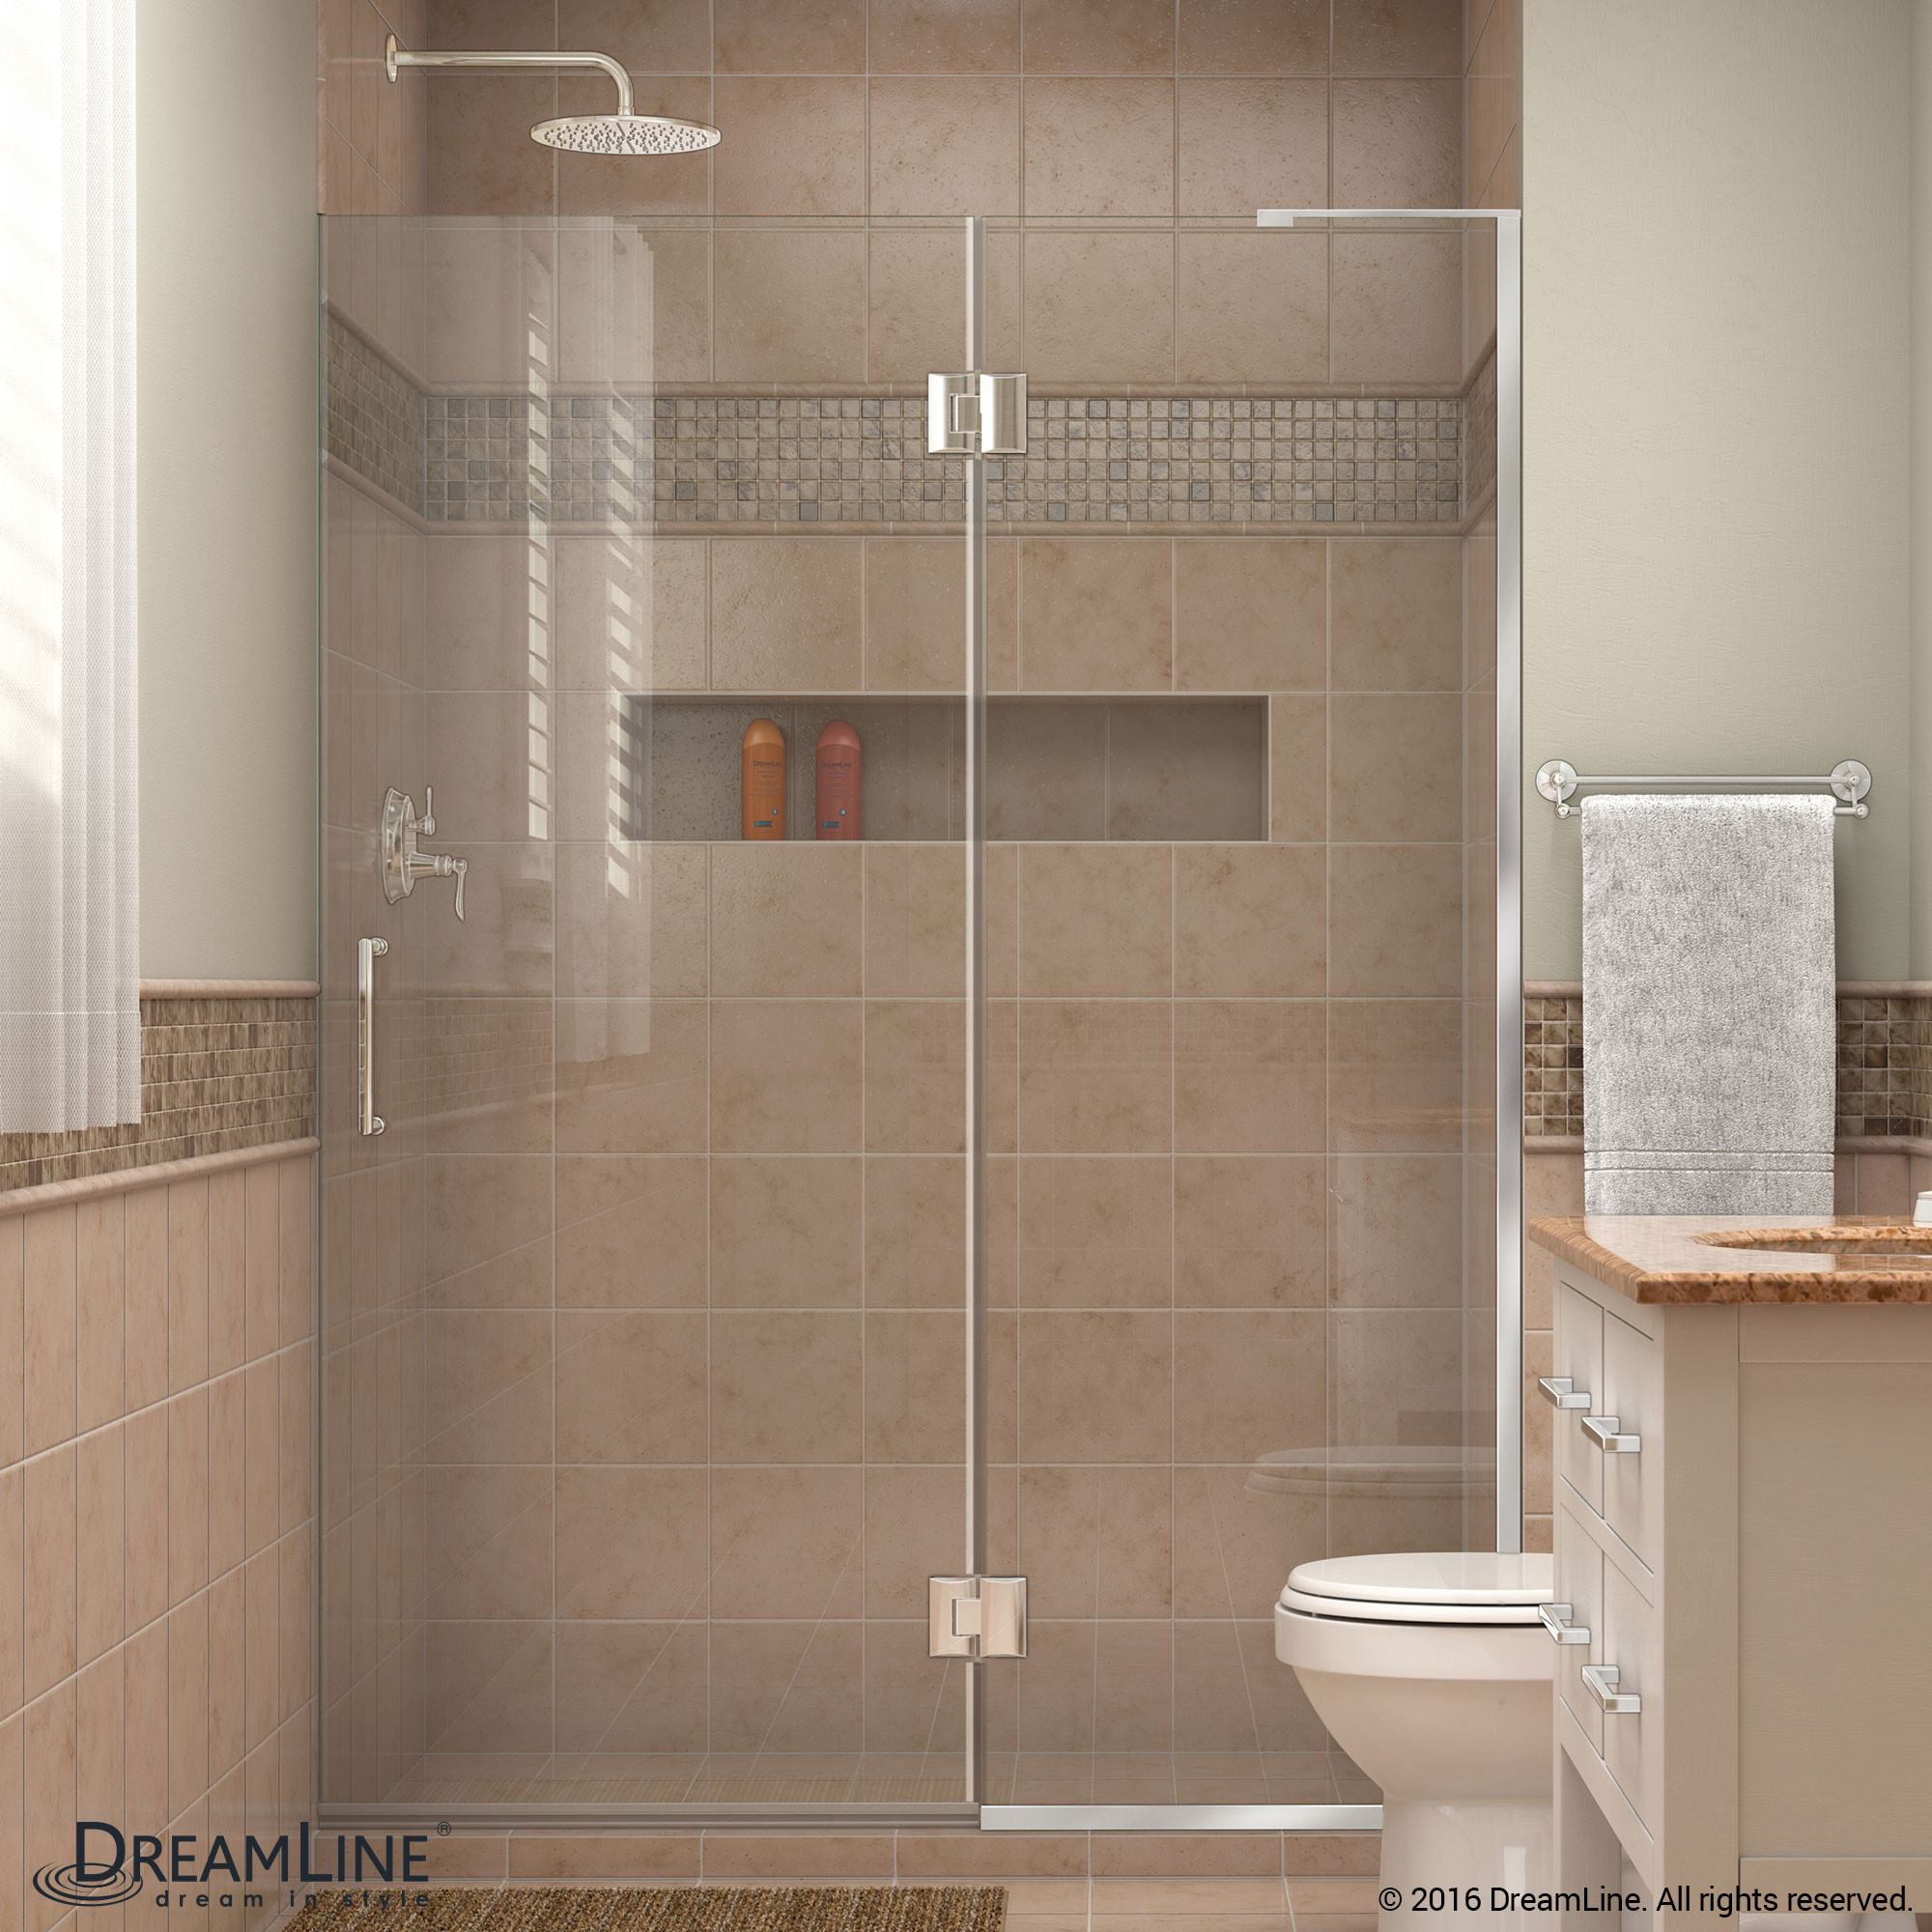 DreamLine D32672R-01 Chrome Unidoor-X Hinged Shower Door With Right-wall Bracket